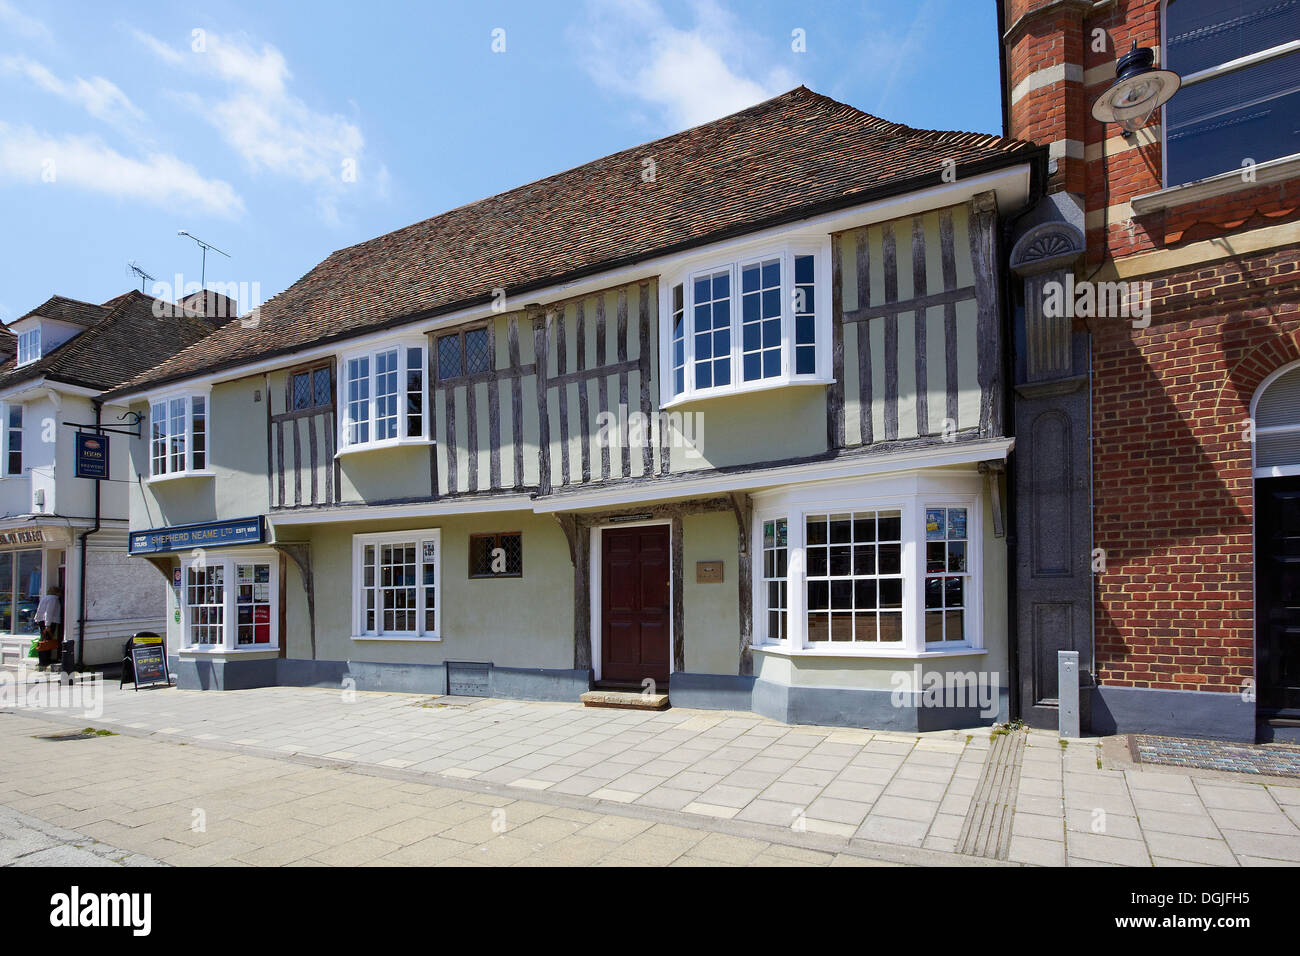 A building in Faversham. - Stock Image